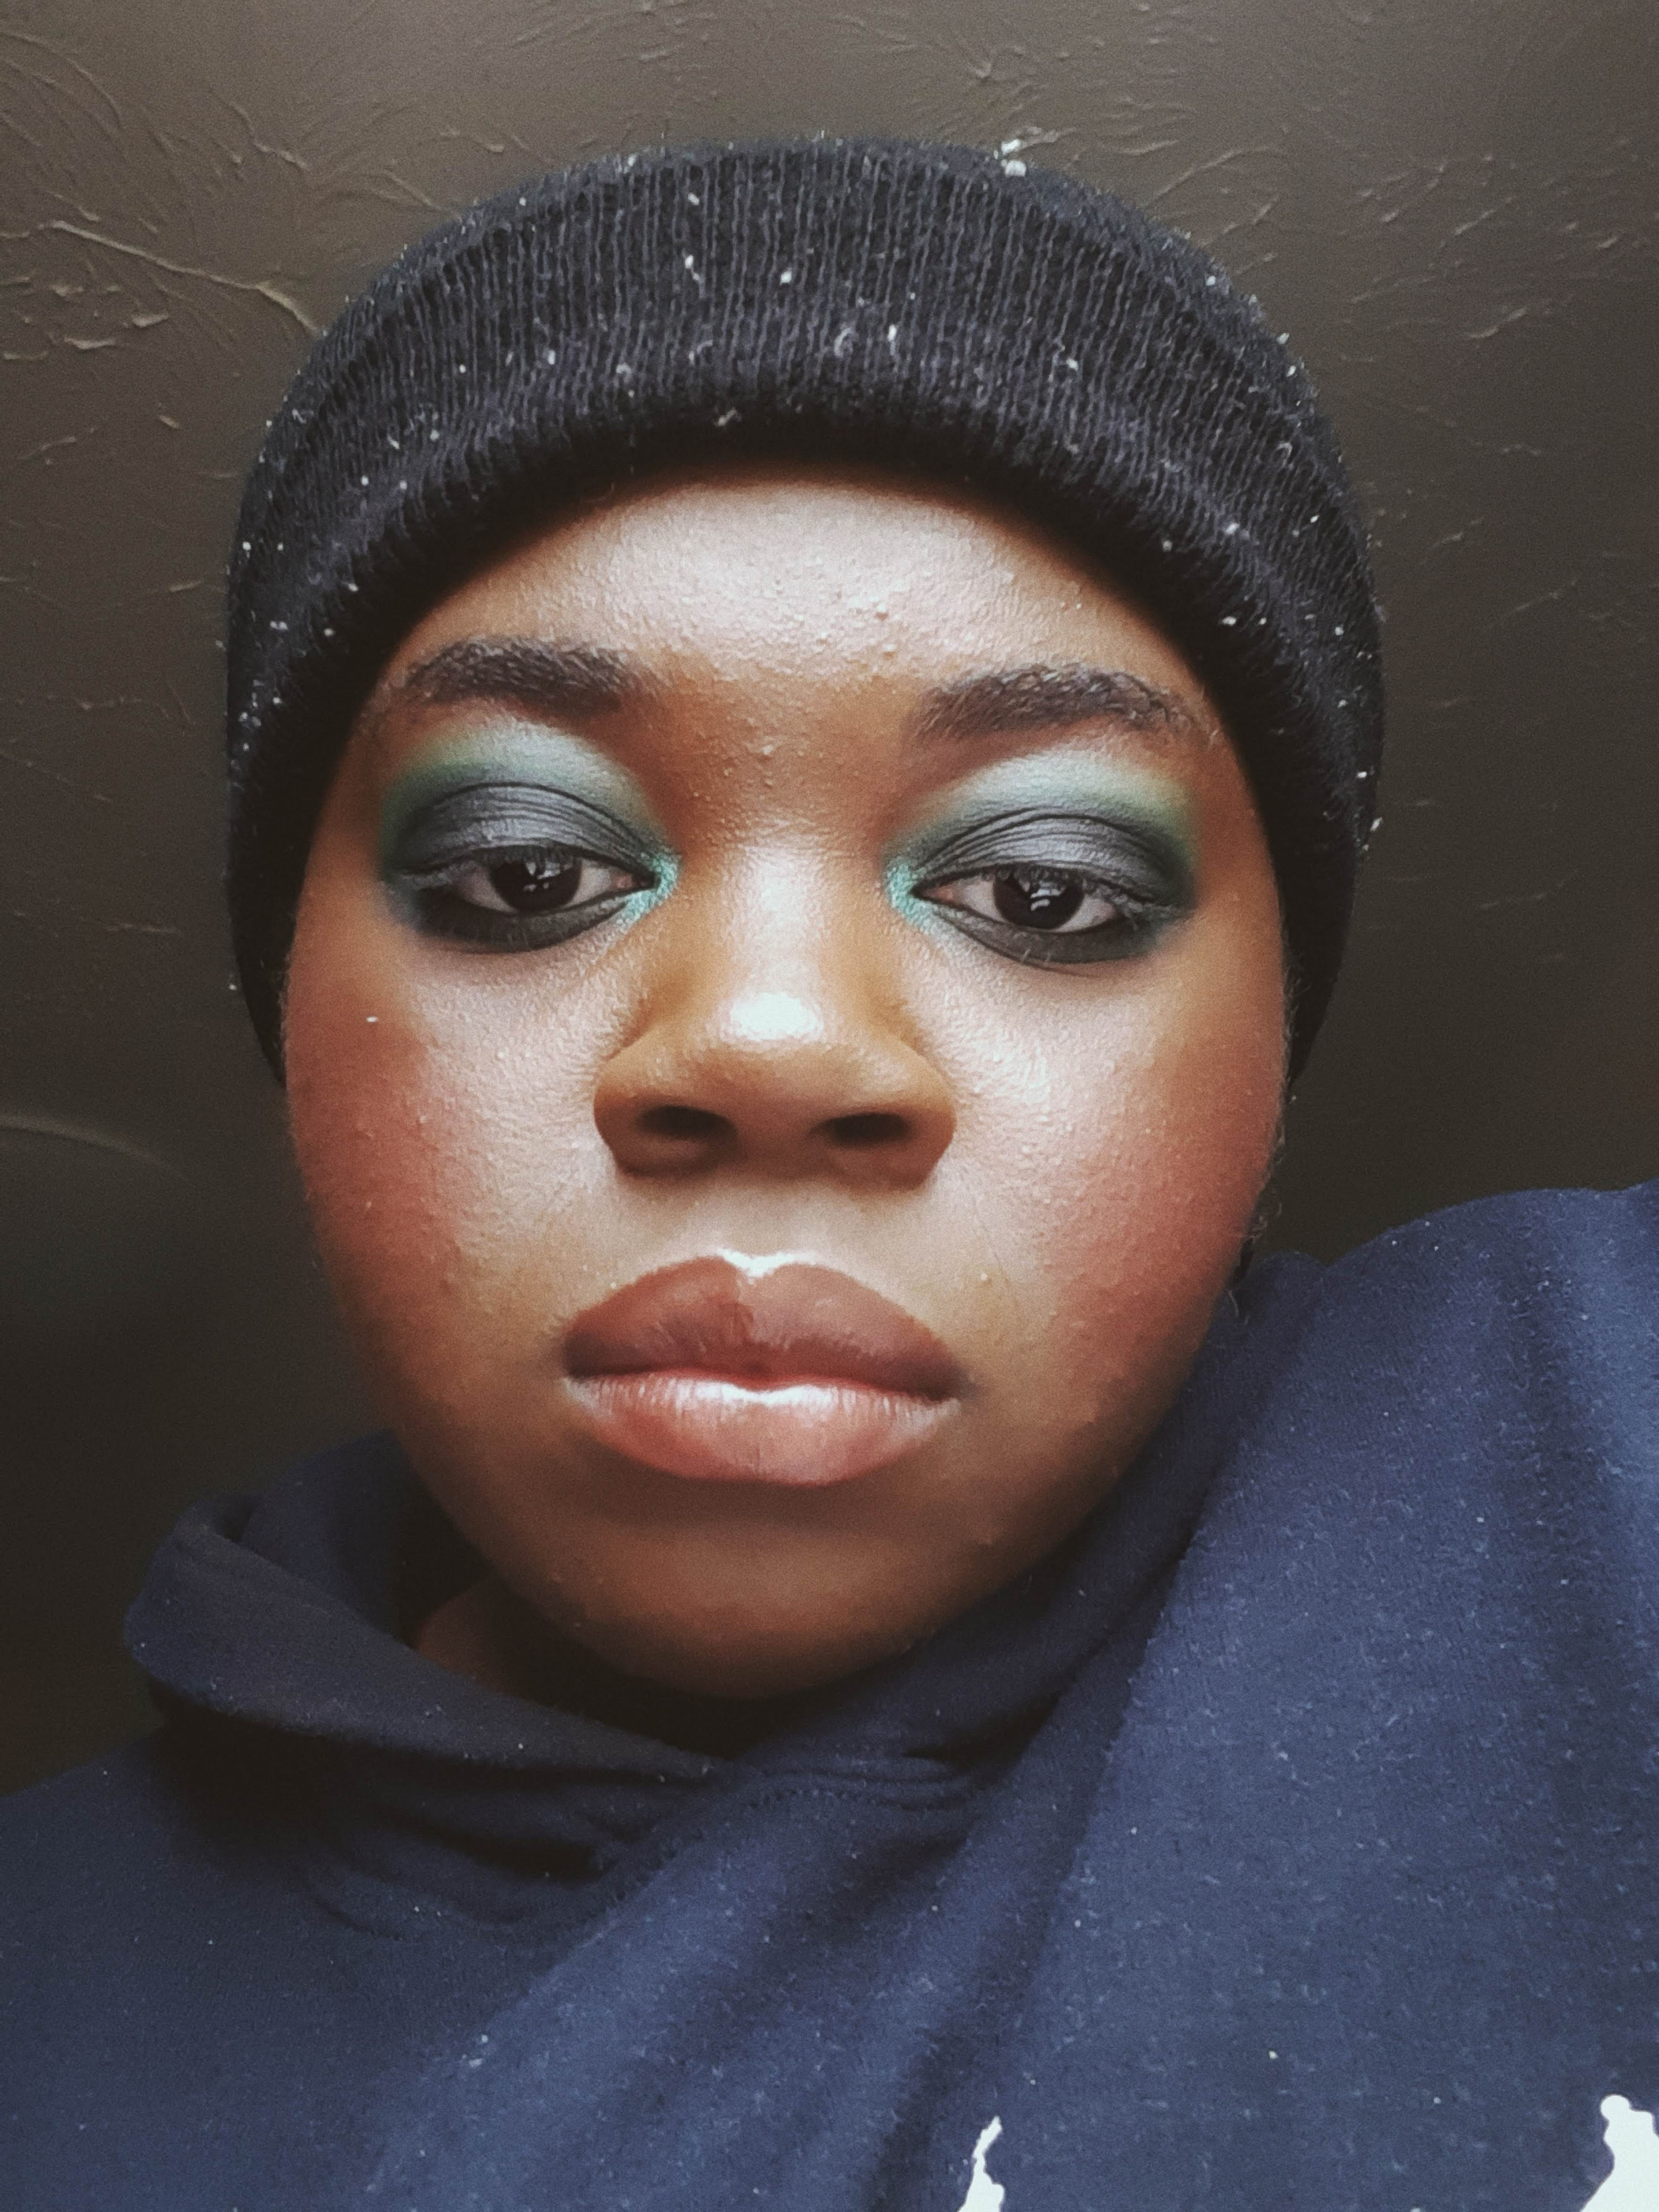 Chizoba is wearing a black beanie and a navy hoodie. she is wearing a full face of makeup including dark green smokey eyeshadow and nude lip gloss. she is giving a smouldering expression